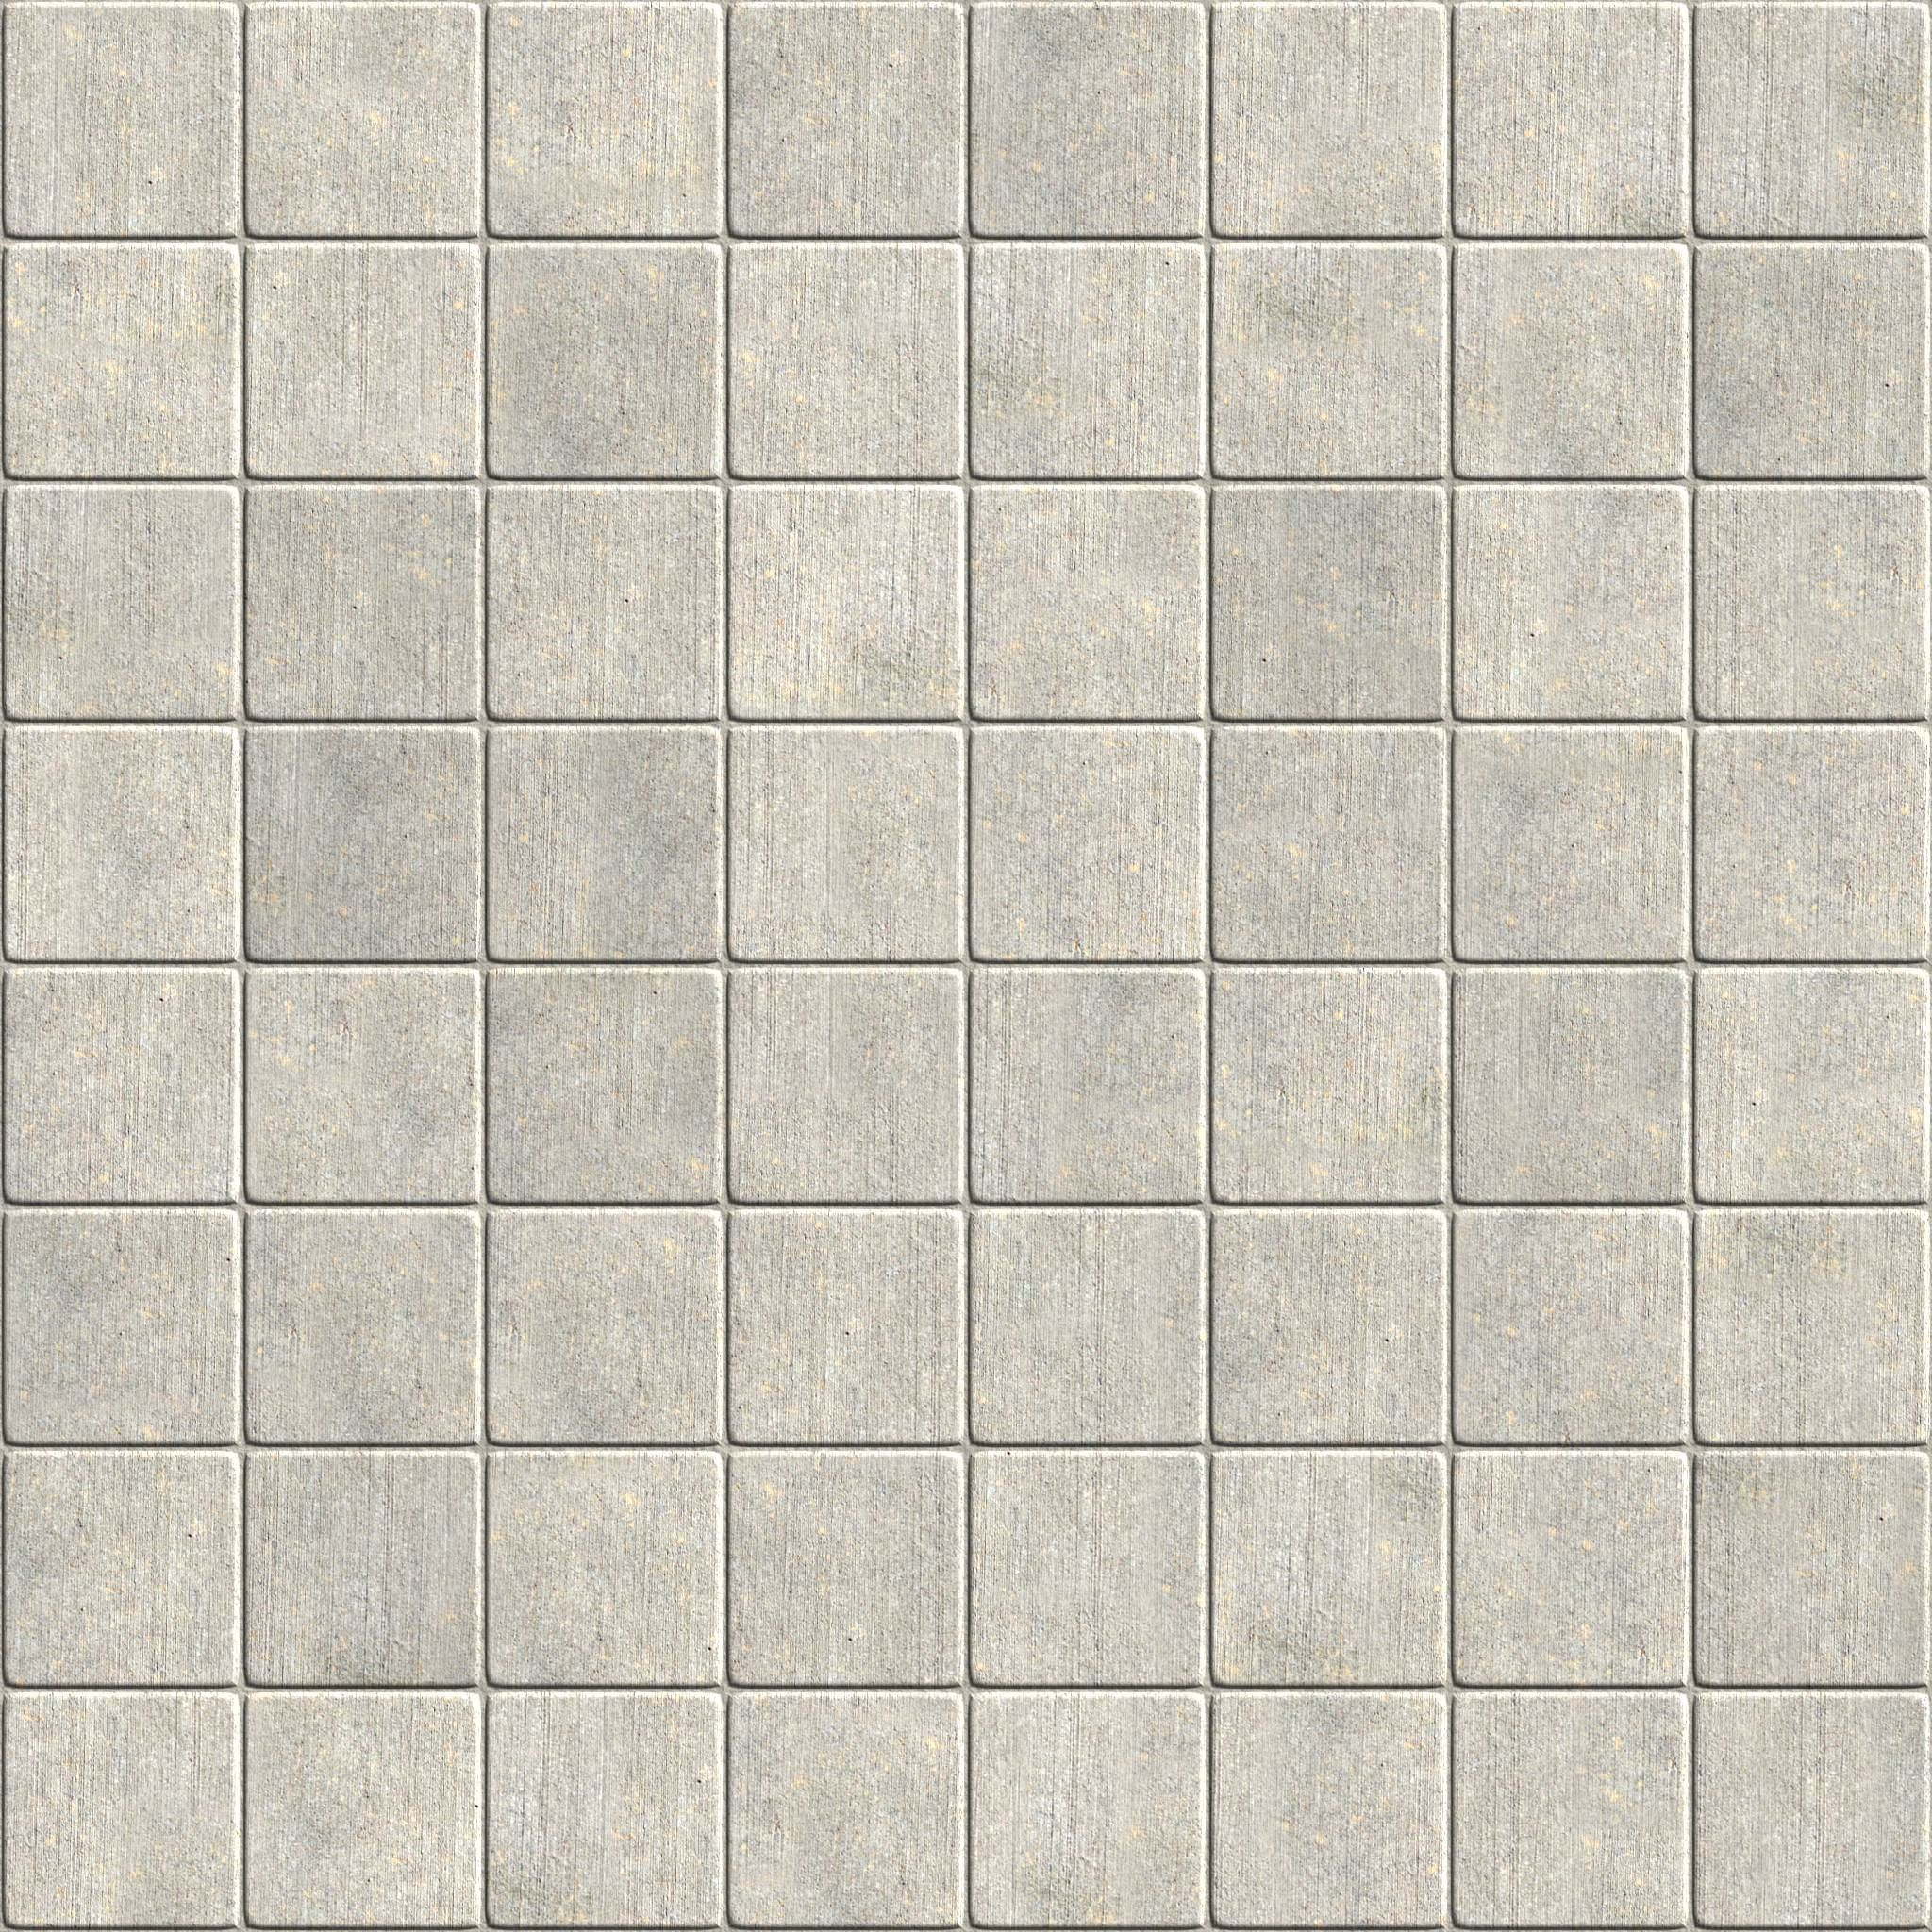 Bathroom tiles texture -